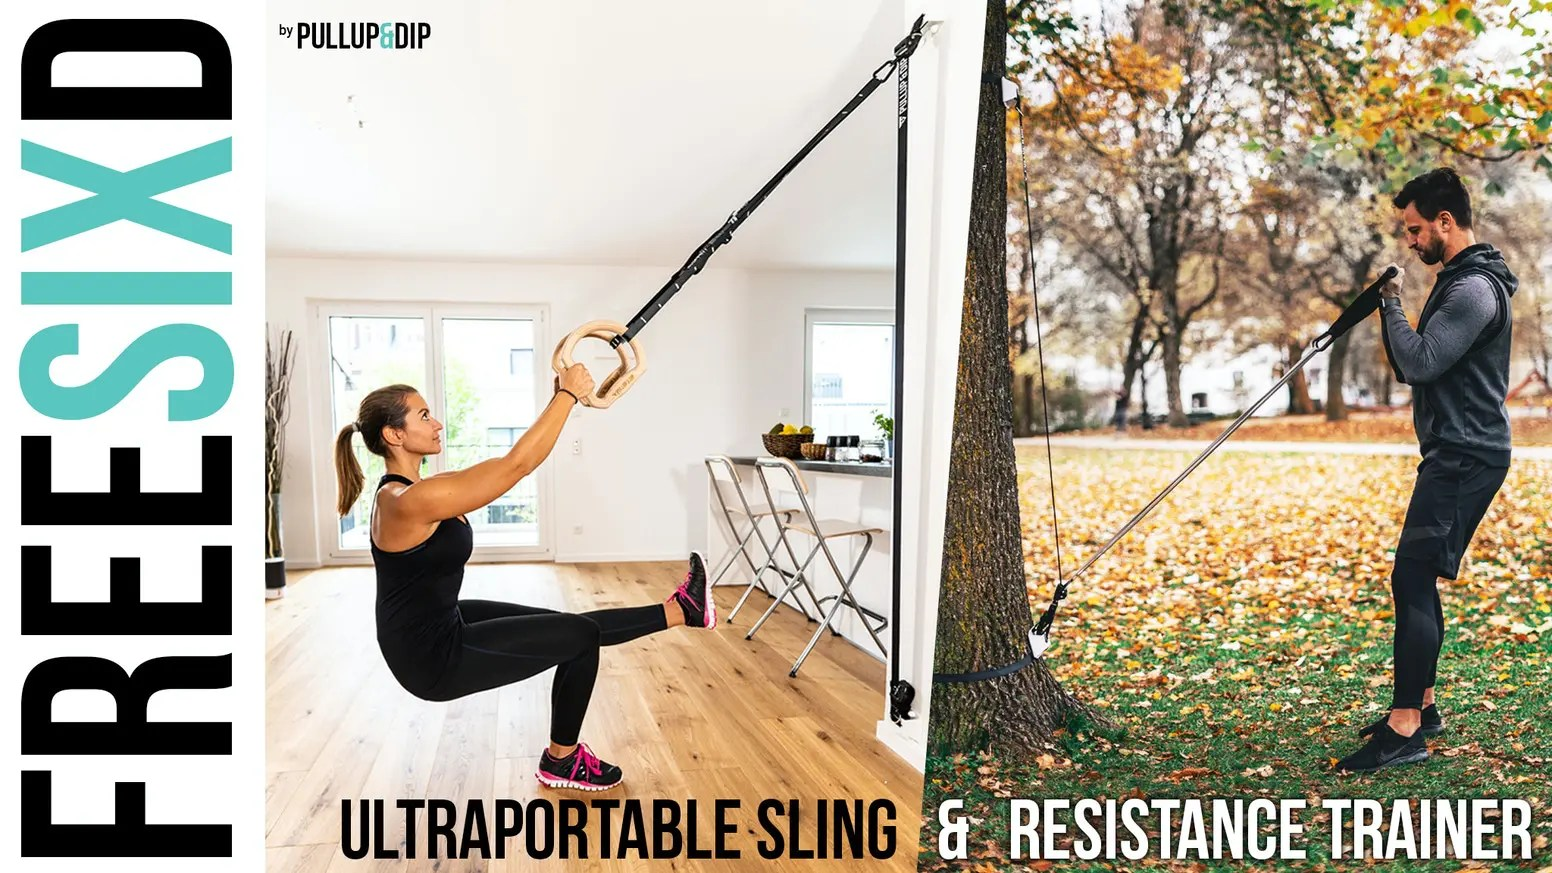 FREESIXD-The-Innovative-Sling-Resistance-Trainer